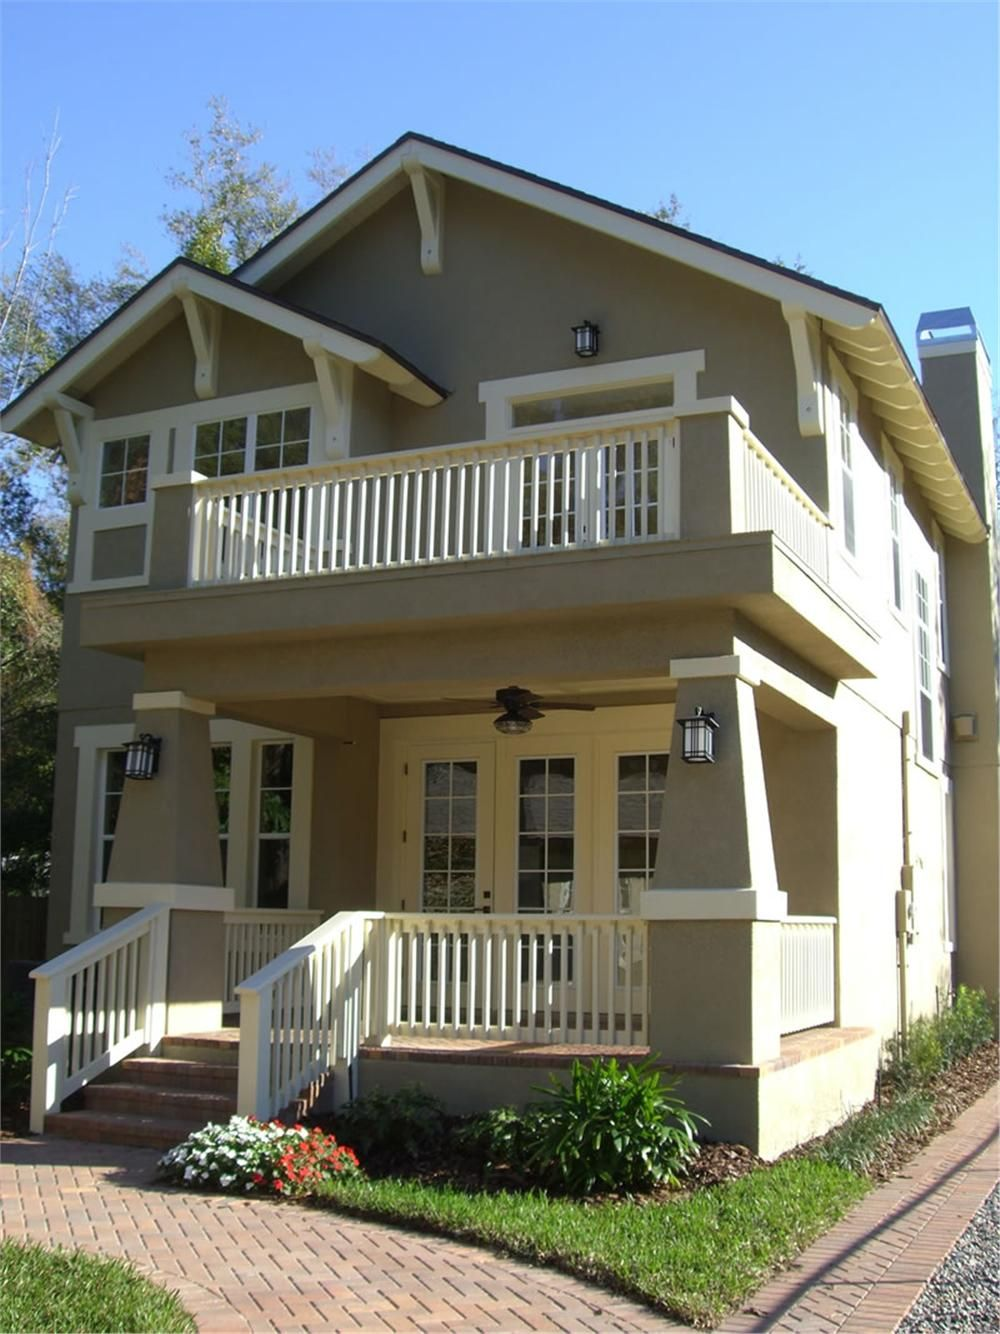 2 story bungalow :) | Dream Home | Pinterest | Bungalow, House and ...